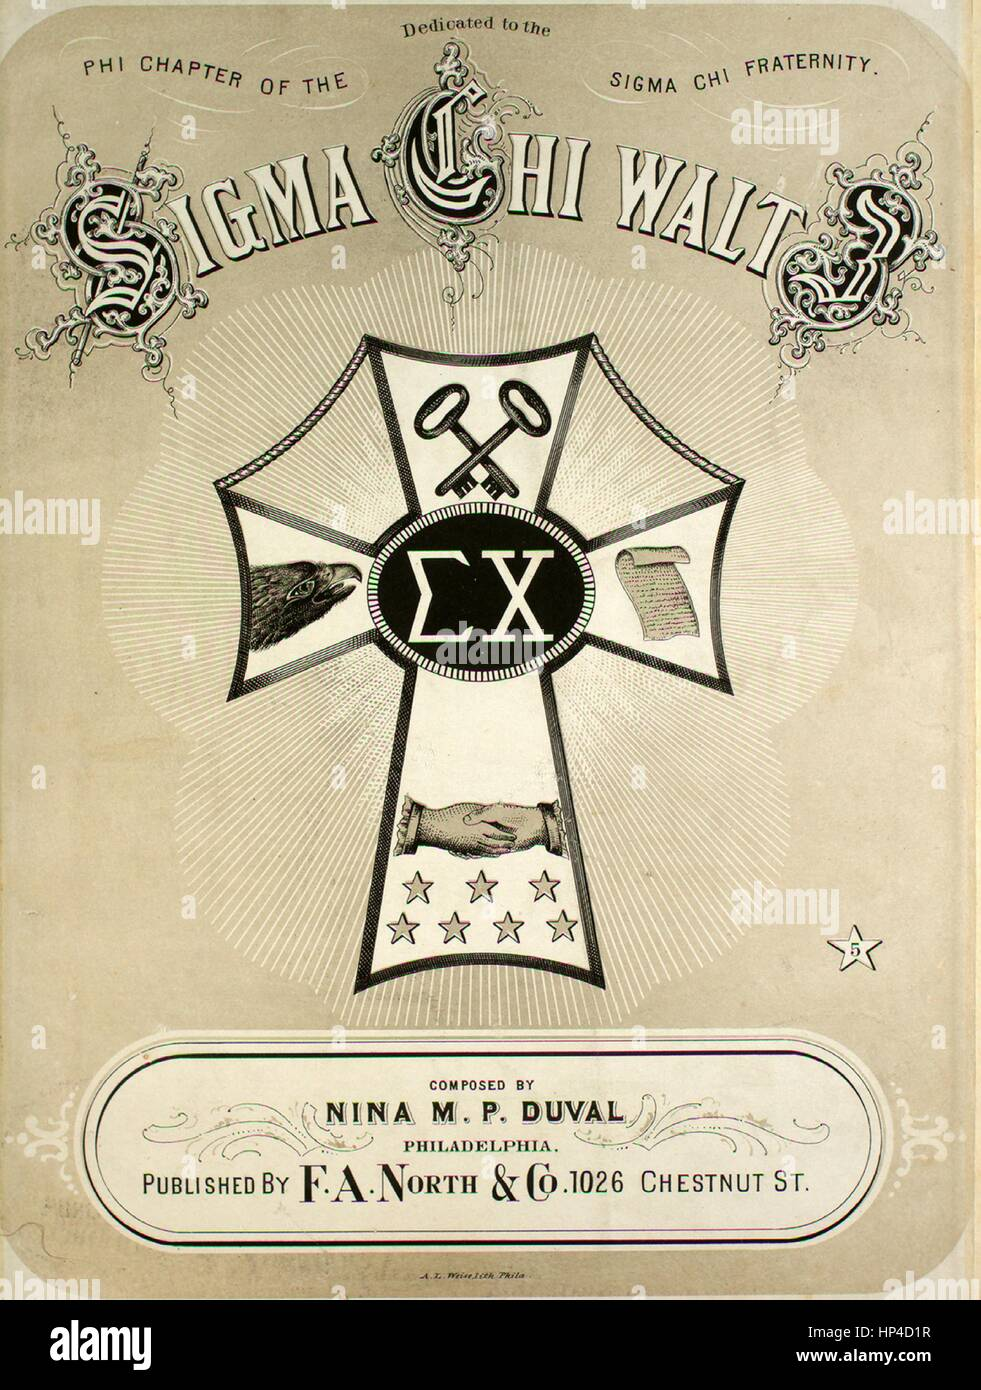 Sheet Music Cover Image Of The Song Sigma Chi Waltz With Original